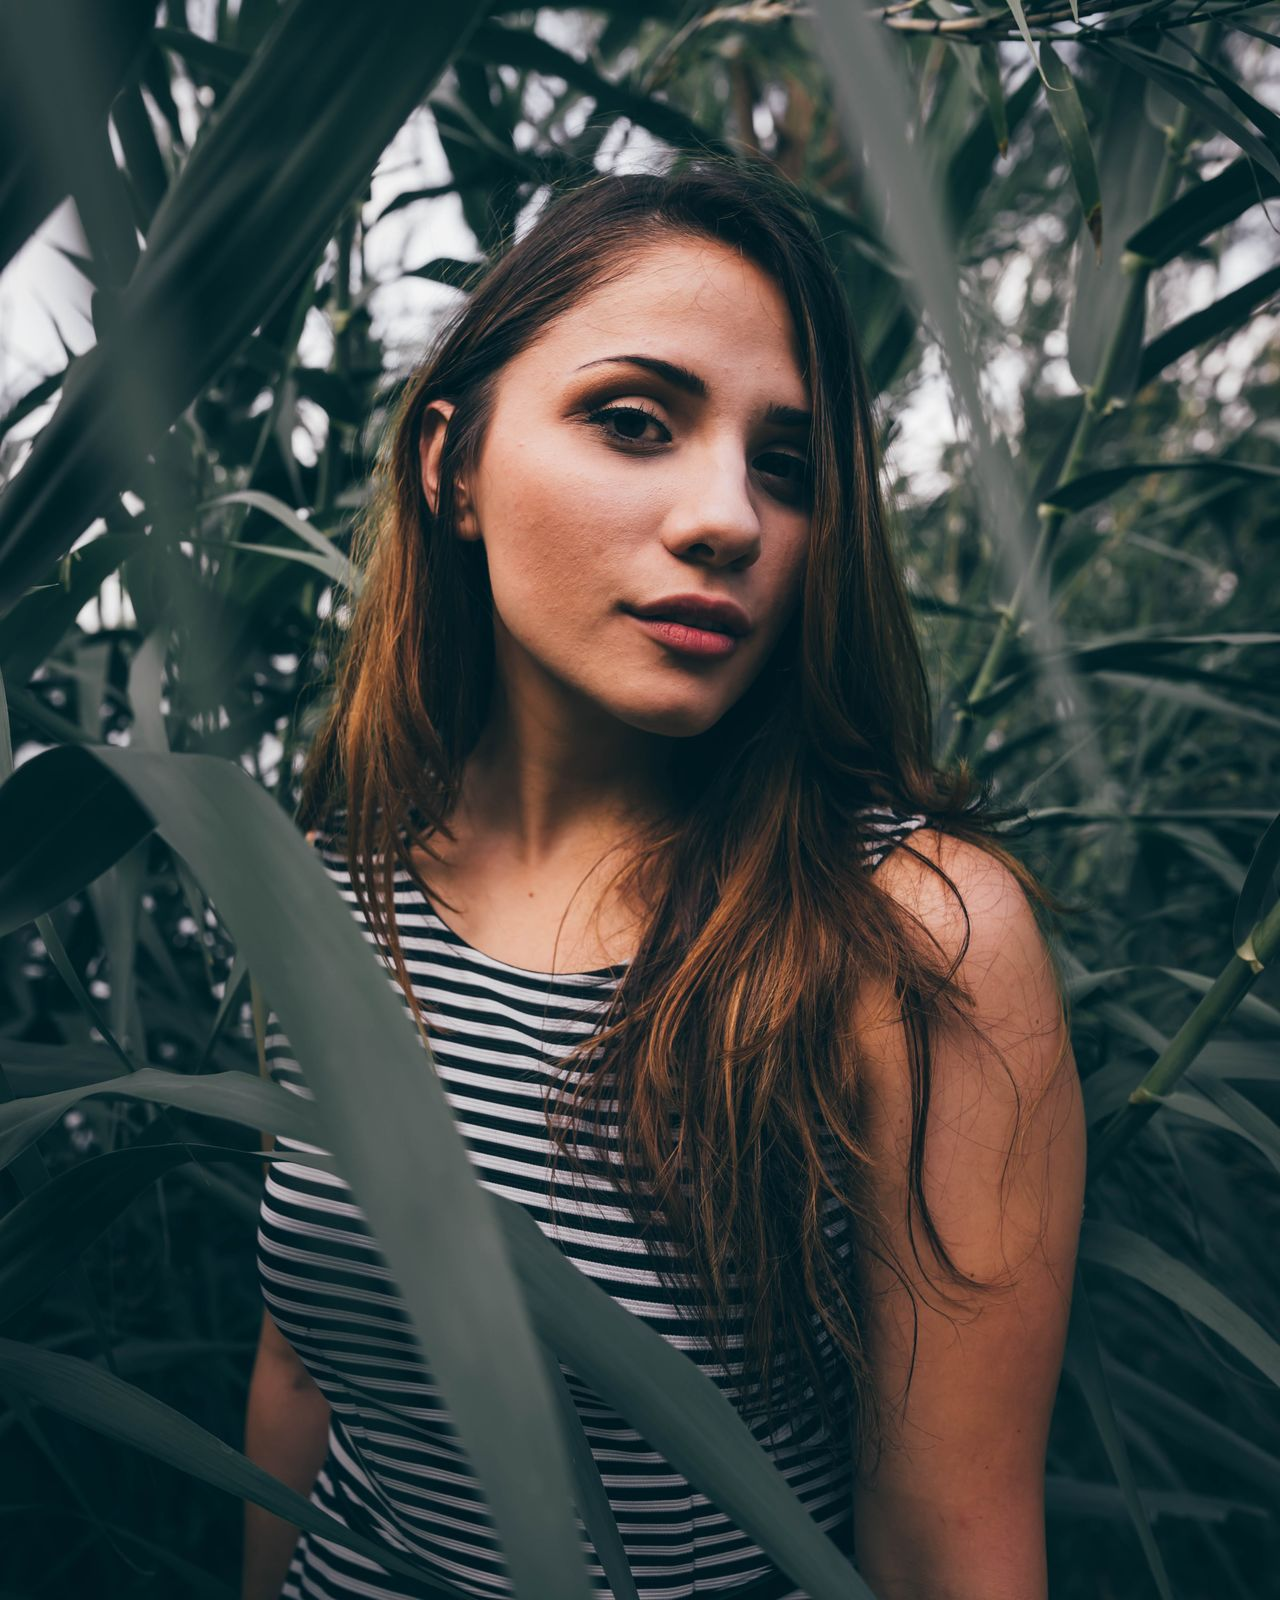 EyeEm Selects Young Adult Adult Portrait Only Women Young Women One Young Woman Only One Woman Only One Person People Beautiful Woman Adults Only Women Beautiful People Outdoors Day Nature Close-up Out Of The Box